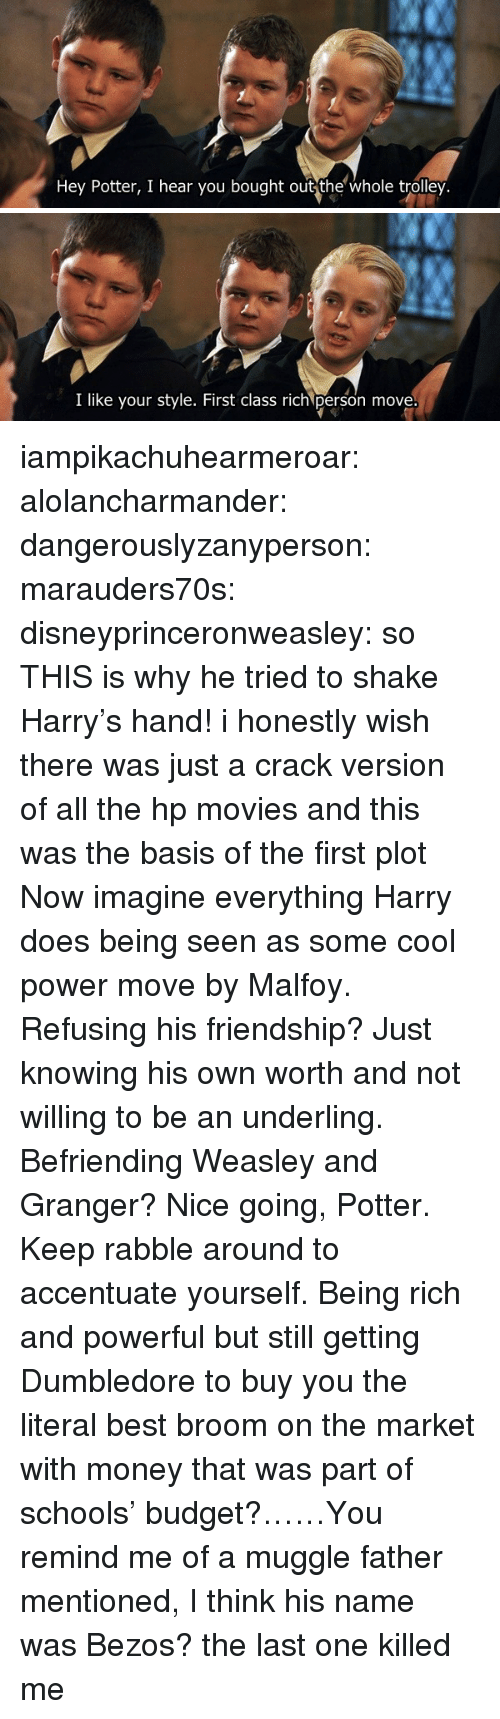 Trolley: Hey Potter, I hear you bought out the whole trolley.   I like your style. First class rich person move iampikachuhearmeroar: alolancharmander:  dangerouslyzanyperson:  marauders70s:  disneyprinceronweasley: so THIS is why he tried to shake Harry's hand! i honestly wish there was just a crack version of all the hp movies and this was the basis of the first plot   Now imagine everything Harry does being seen as some cool power move by Malfoy. Refusing his friendship? Just knowing his own worth and not willing to be an underling. Befriending Weasley and Granger? Nice going, Potter. Keep rabble around to accentuate yourself.  Being rich and powerful but still getting Dumbledore to buy you the literal best broom on the market with money that was part of schools' budget?……You remind me of a muggle father mentioned, I think his name was Bezos?   the last one killed me